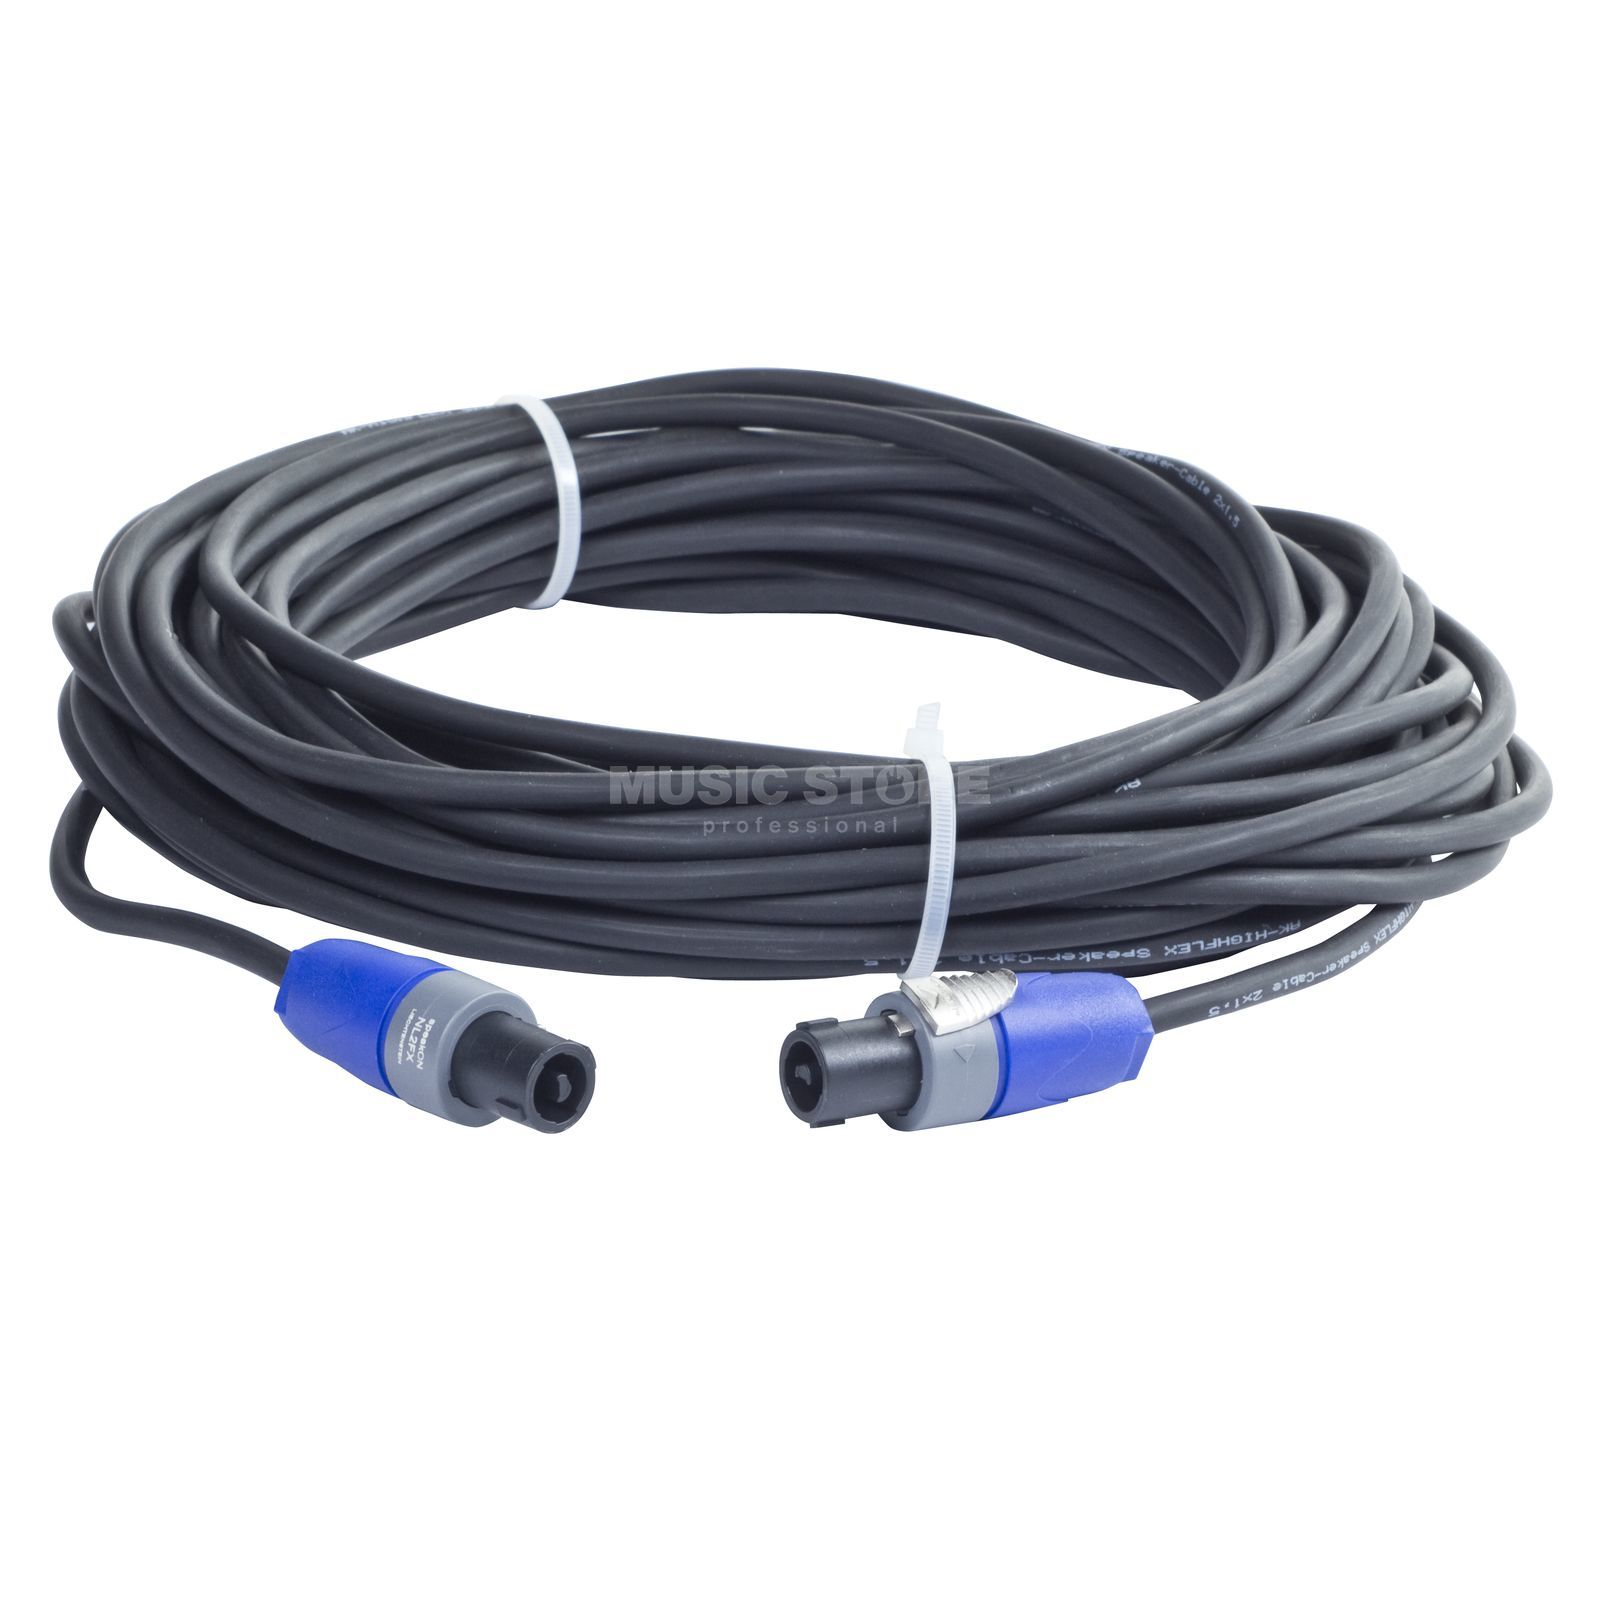 MUSIC STORE LS-Kabel 20m Speakon PRO 2x 1,5mm², Neutrikstecker Produktbild